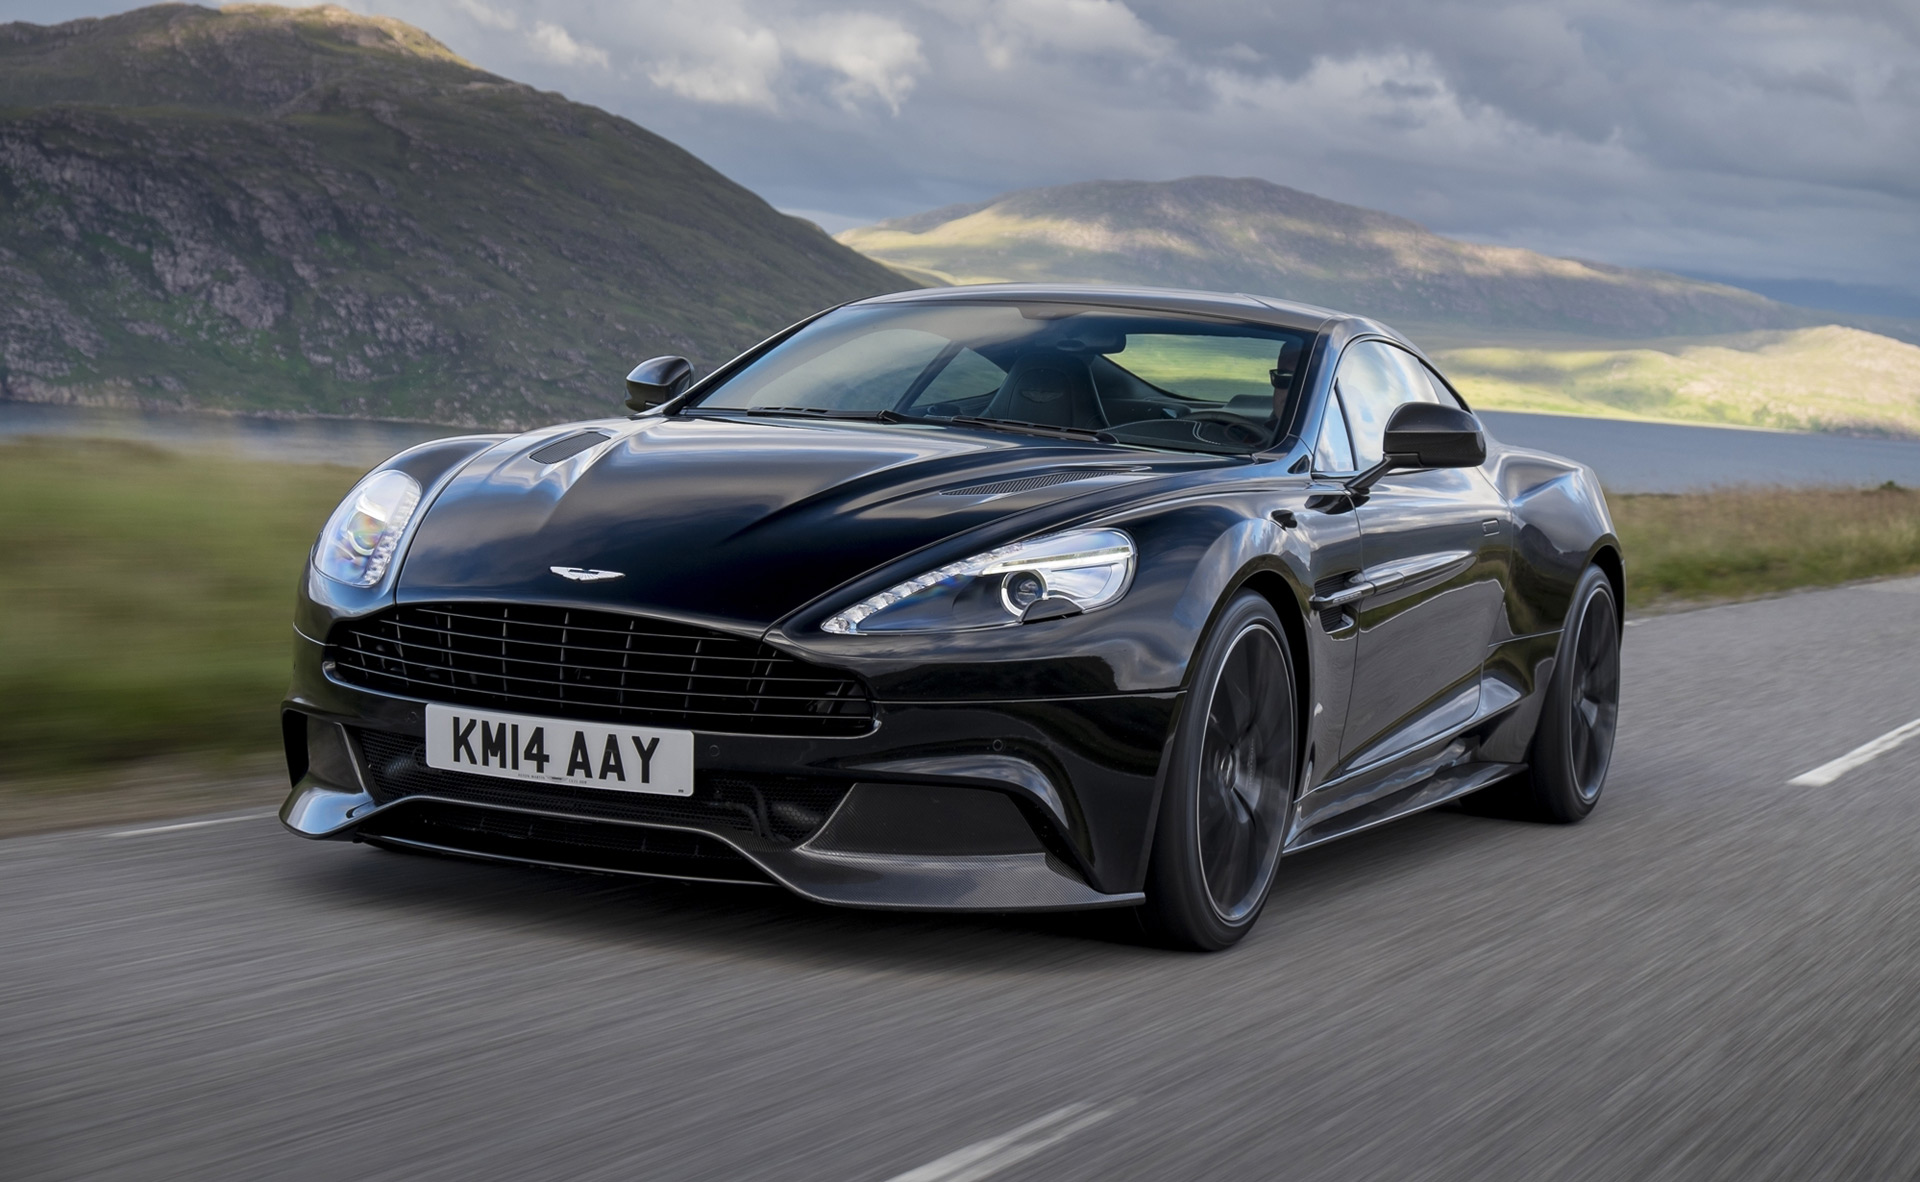 aston martin hints at f1 derived carbon fiber hybrid tech for new vanquish. Black Bedroom Furniture Sets. Home Design Ideas